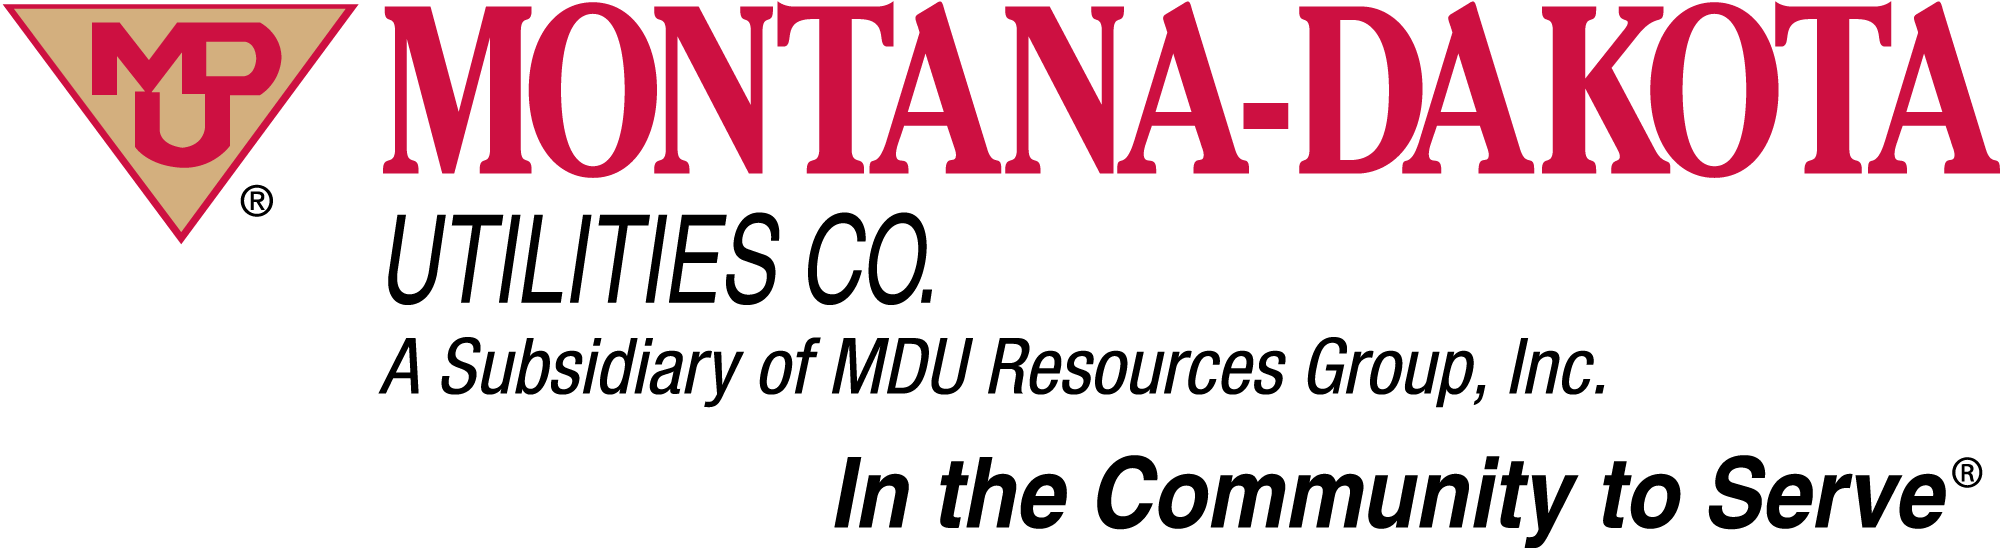 Montana-Dakota Utilities Company